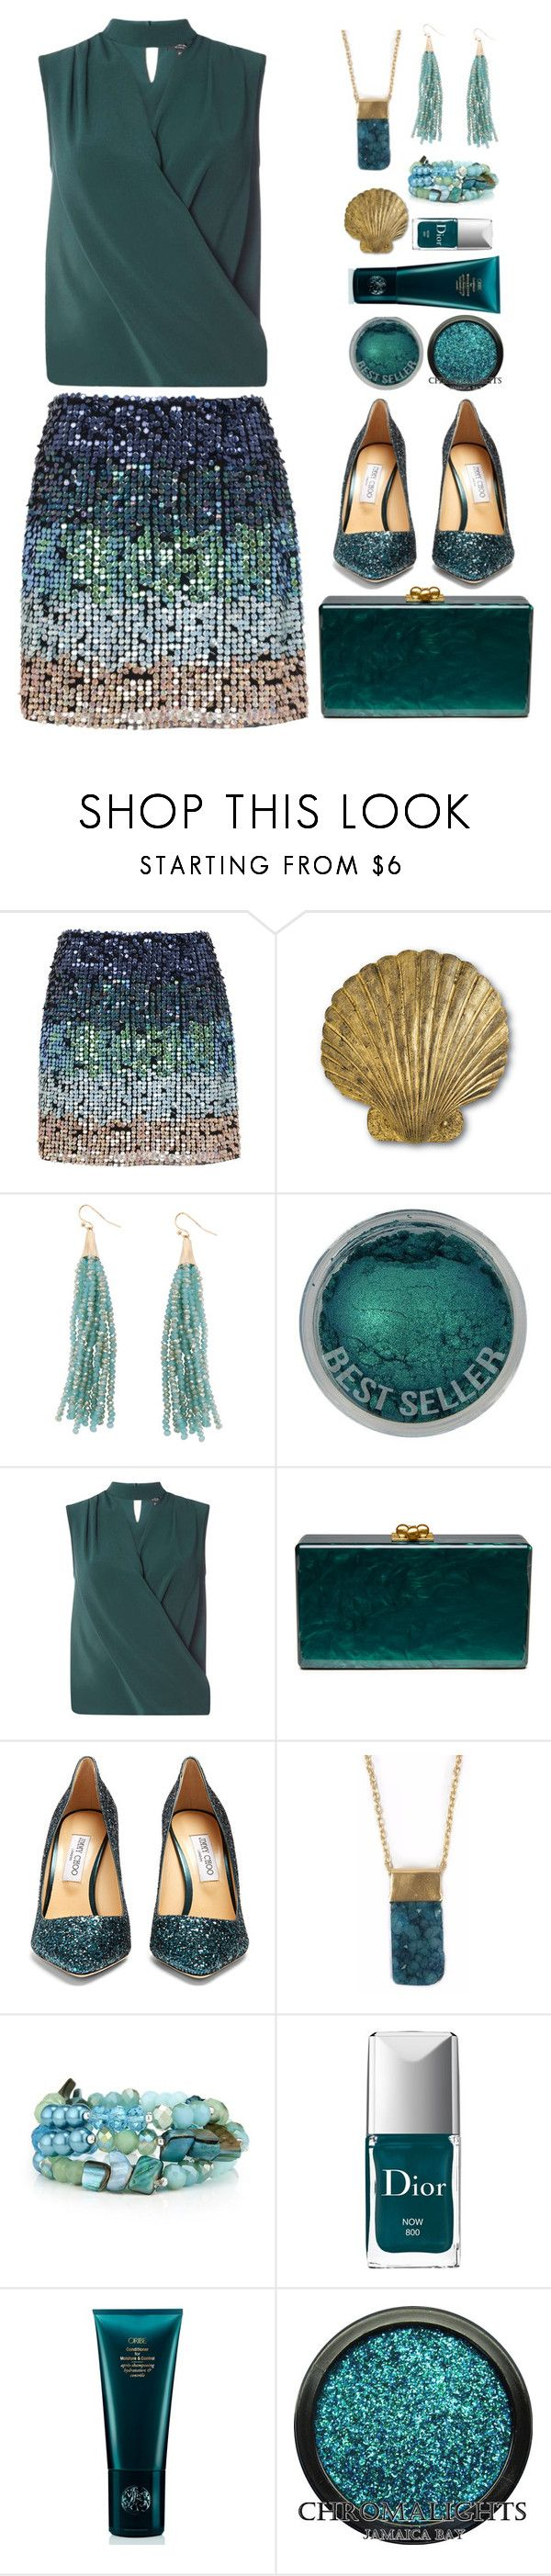 """""""Mermaid Inspired"""" by gicreazioni ❤ liked on Polyvore featuring French Connection, Humble Chic, Dorothy Perkins, Edie Parker, Jimmy Choo, Christian Dior and Space NK"""